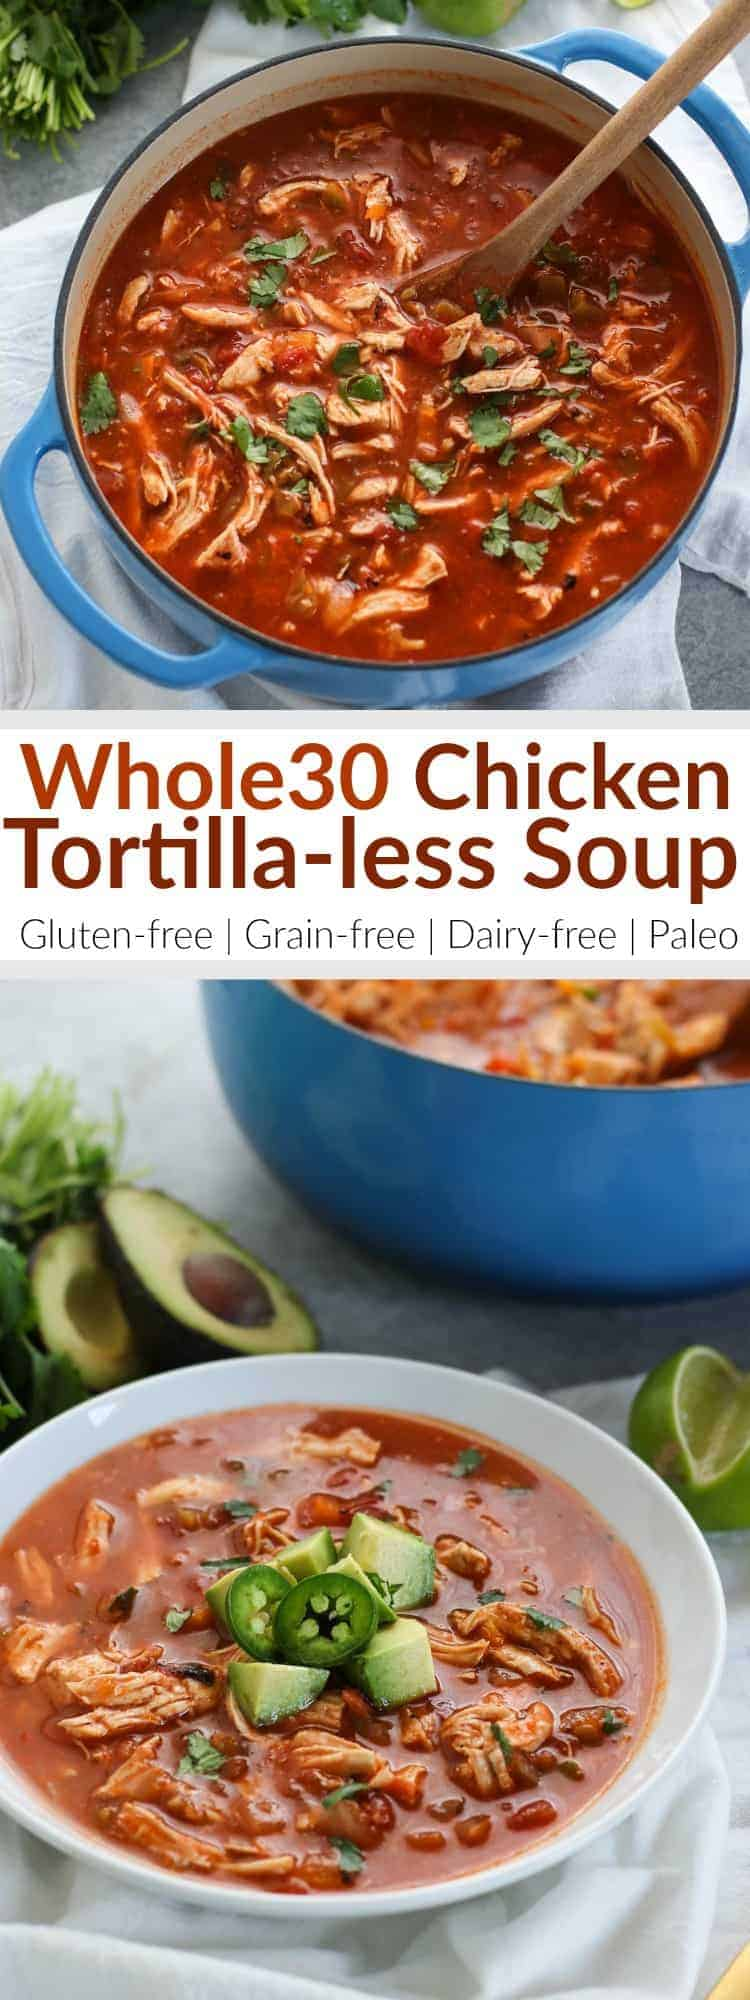 Pin image for Whole30 Chicken Tortilla-less Soup